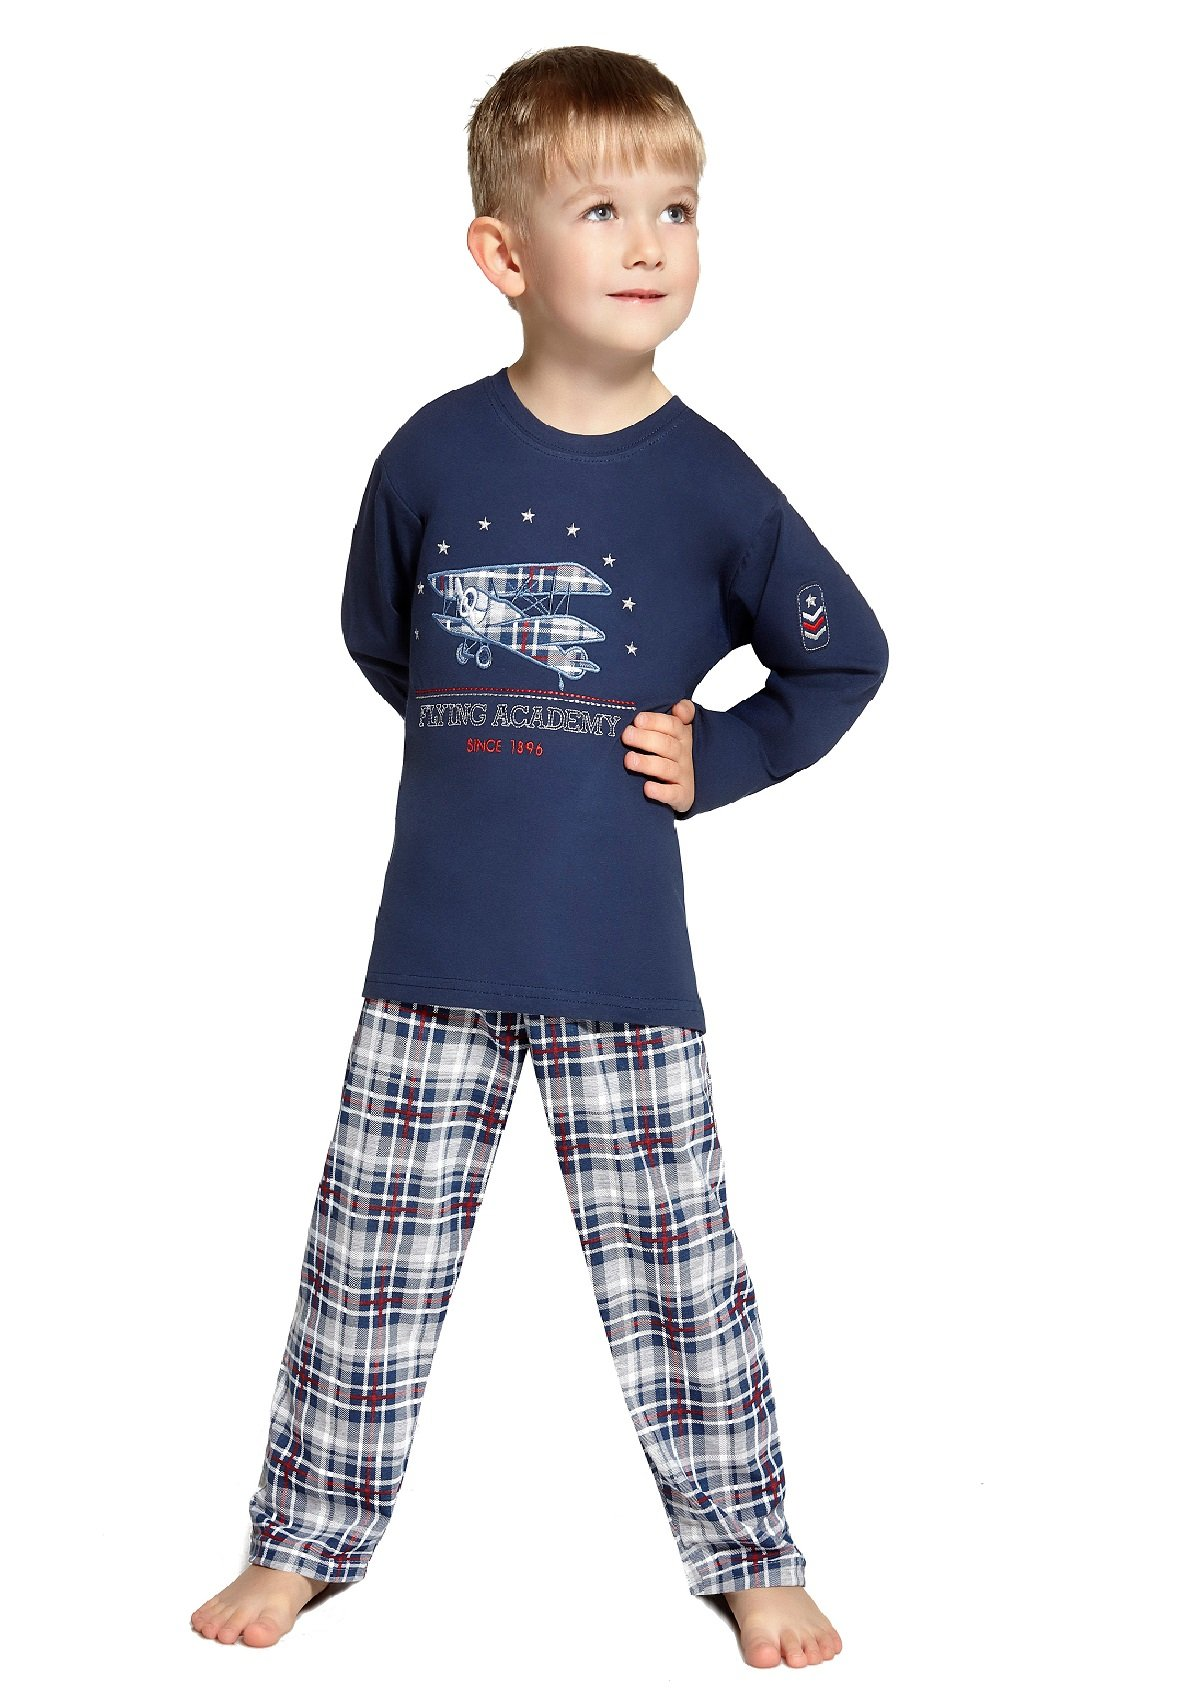 Two-Piece Long-Sleeved Pajamas For Boys Flying Academy by Cornette 100% Cotton